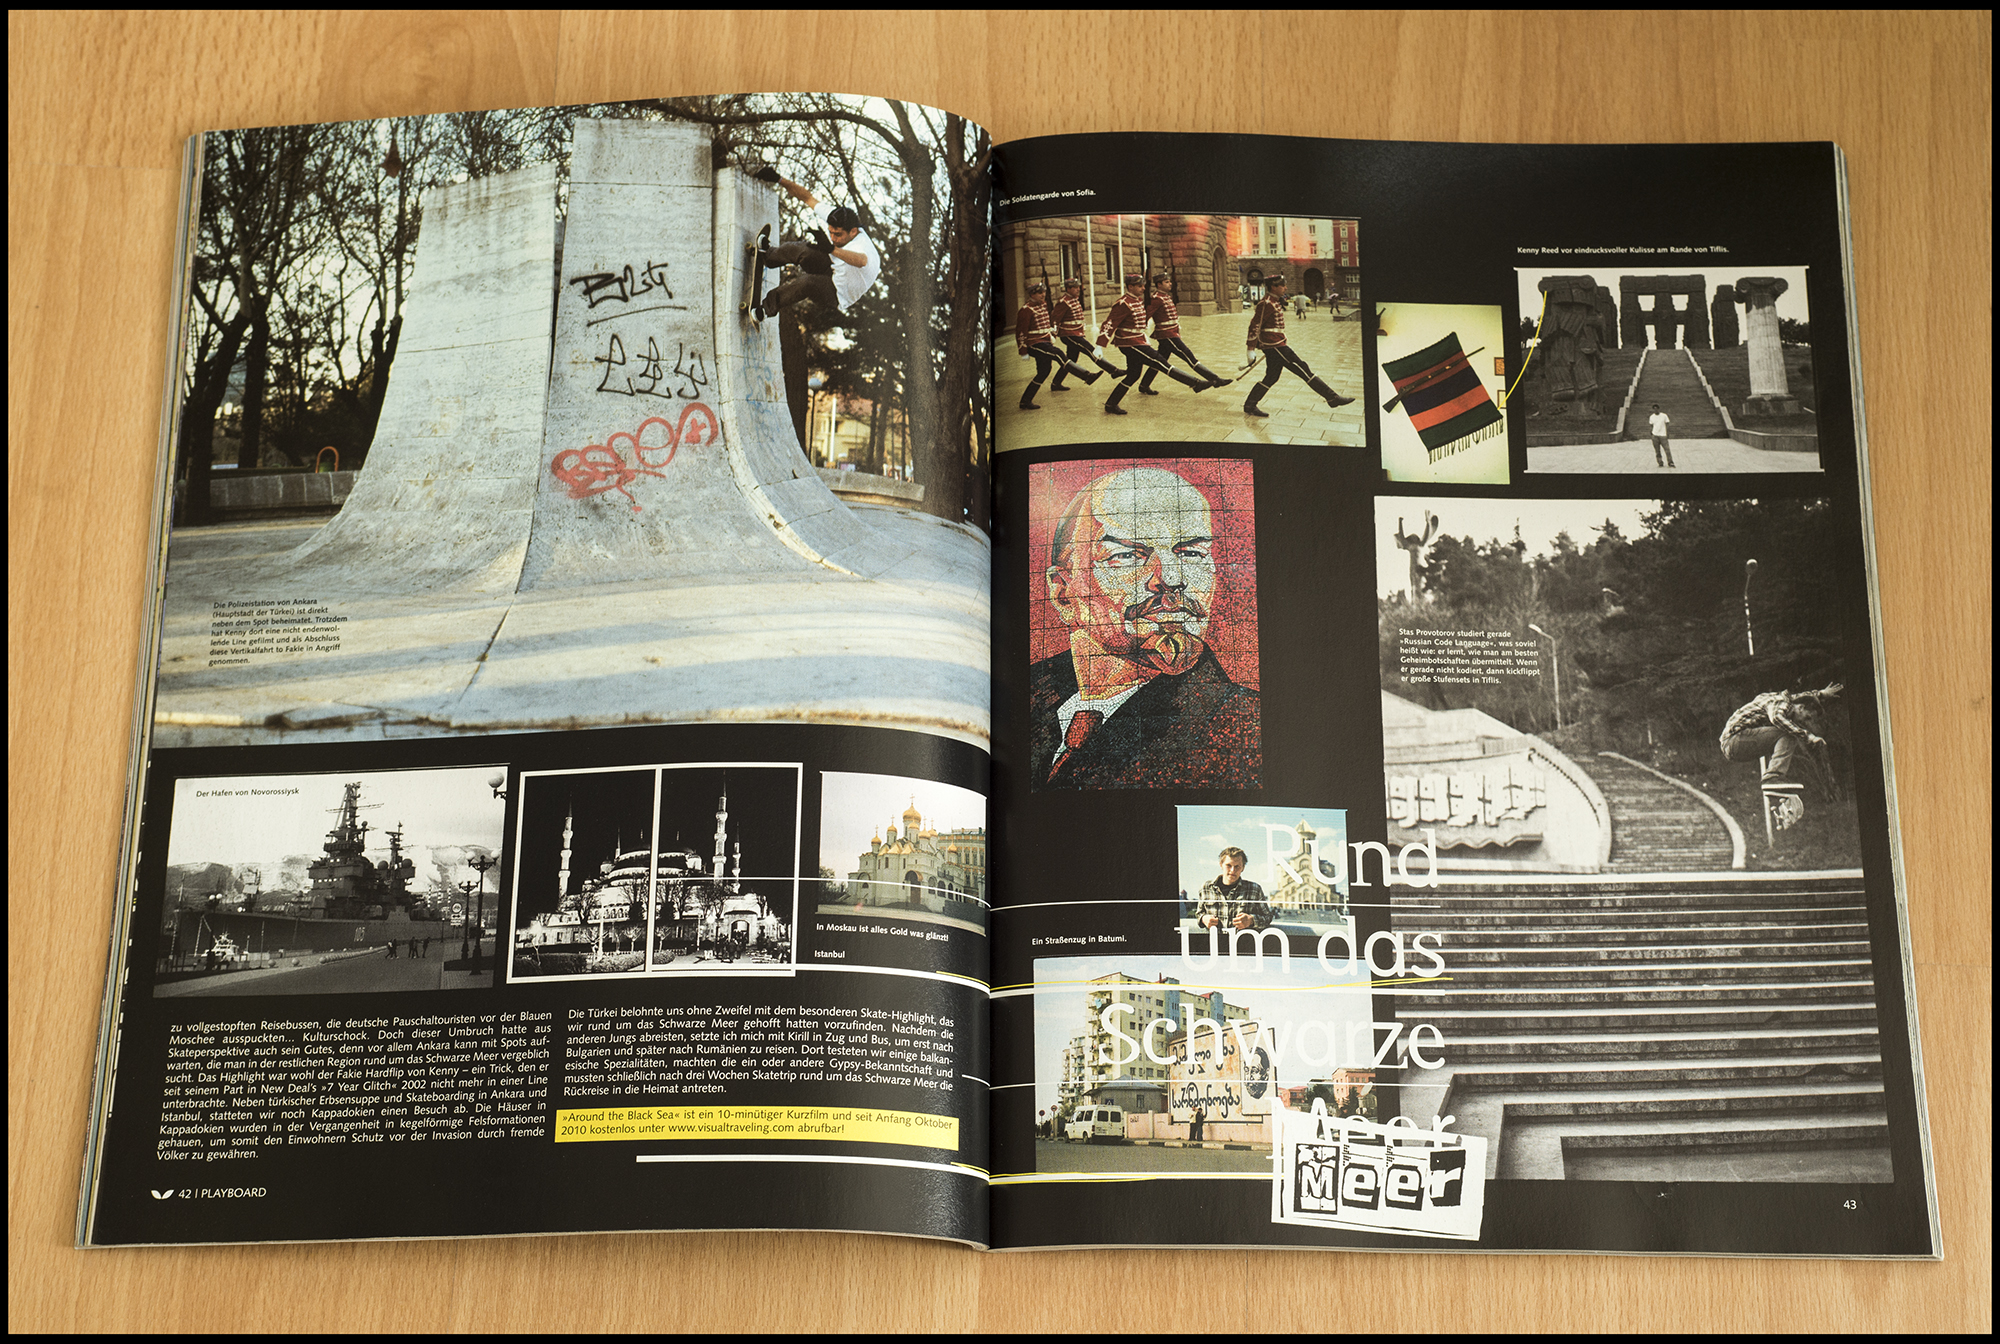 Magazines Playboard 62 Page 03 LOWQ 2000P